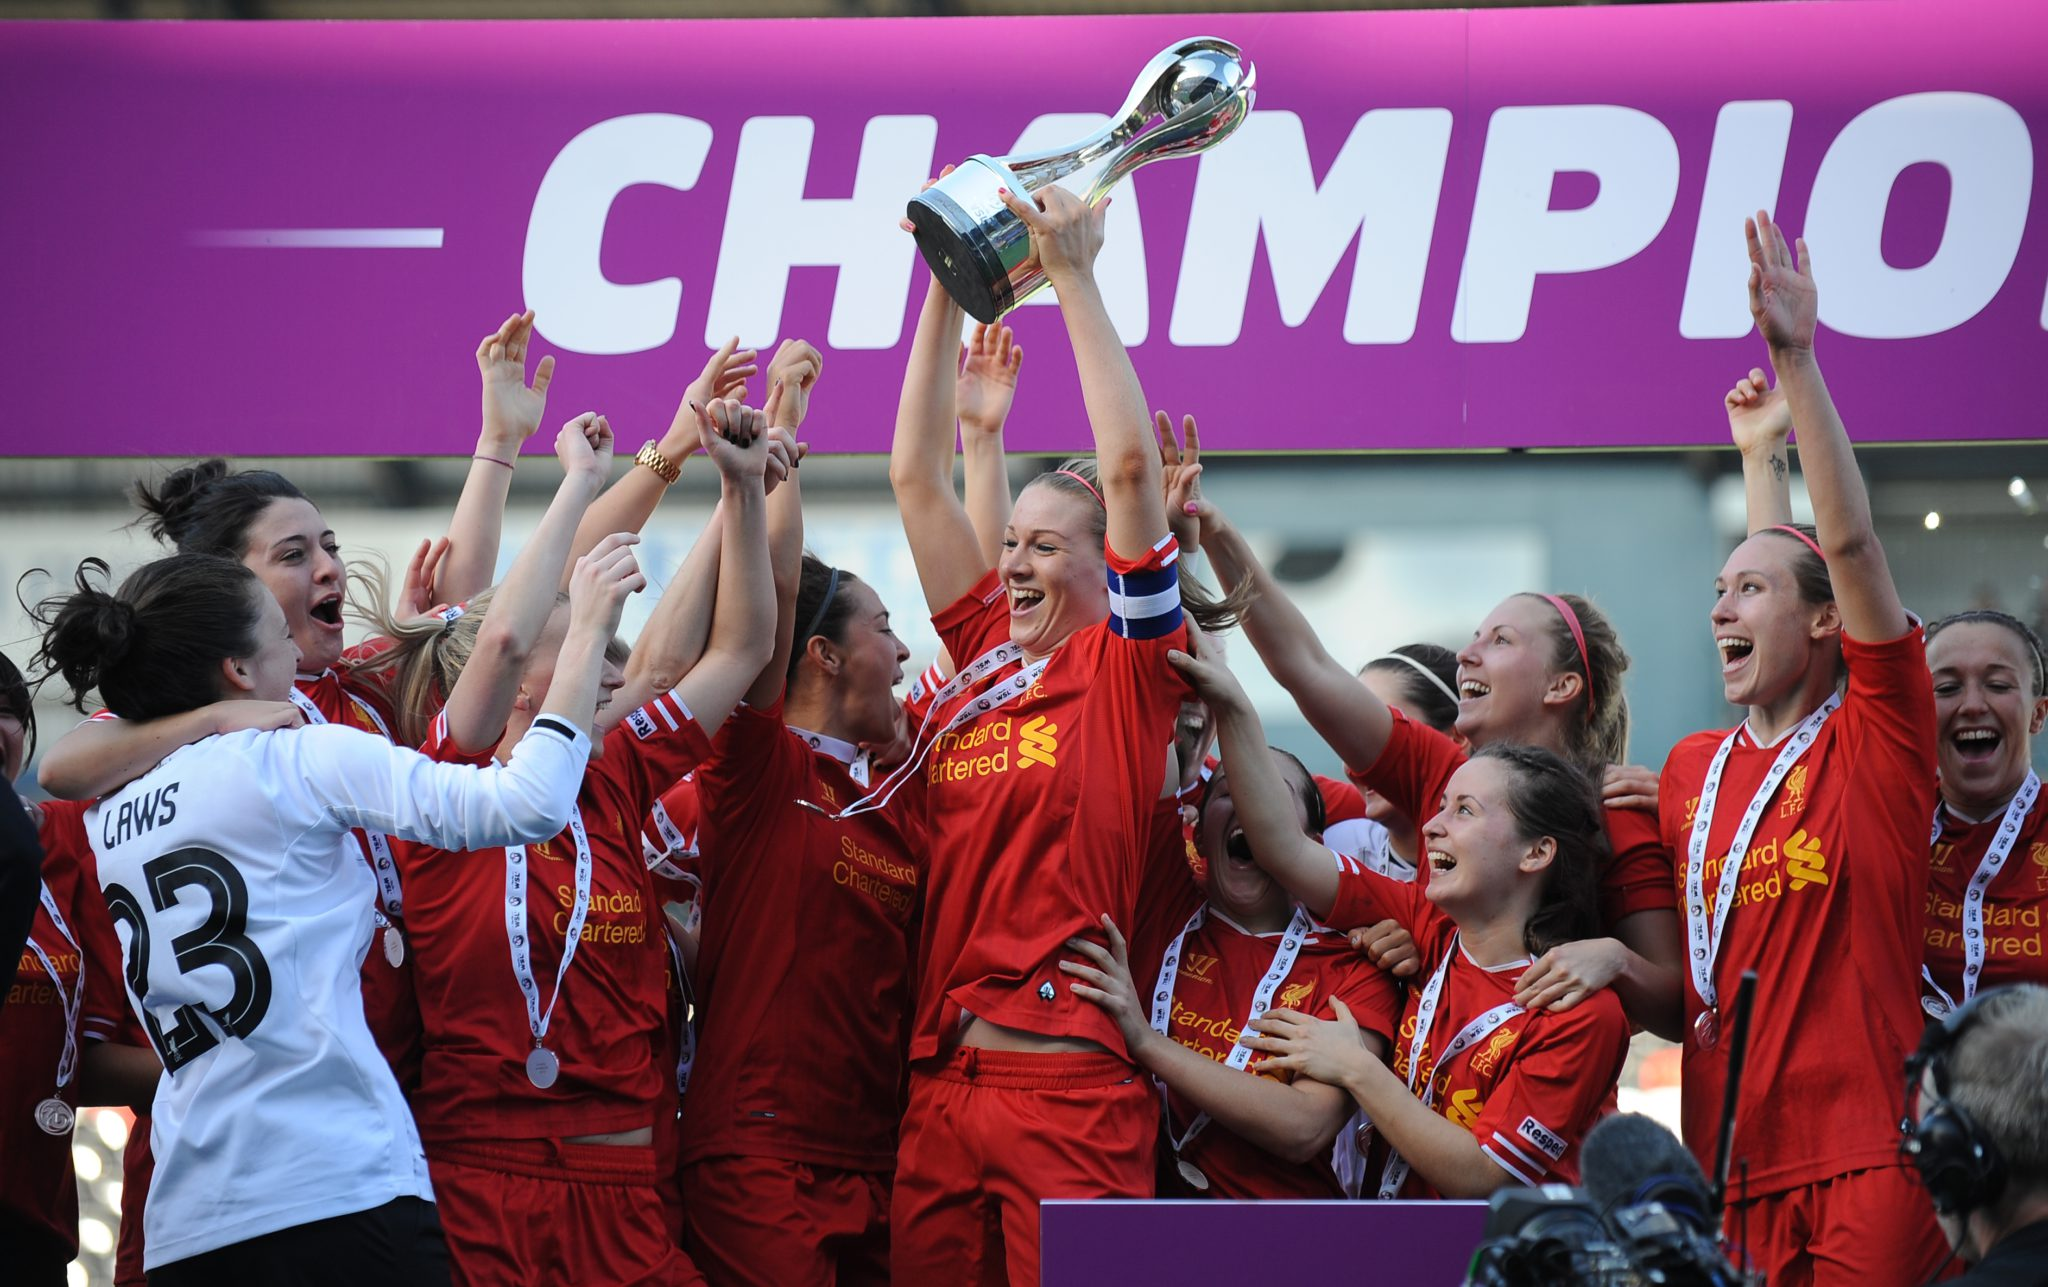 Liverpool won the FAWSL in 2013, but can the Reds repeat? (AP Photo)